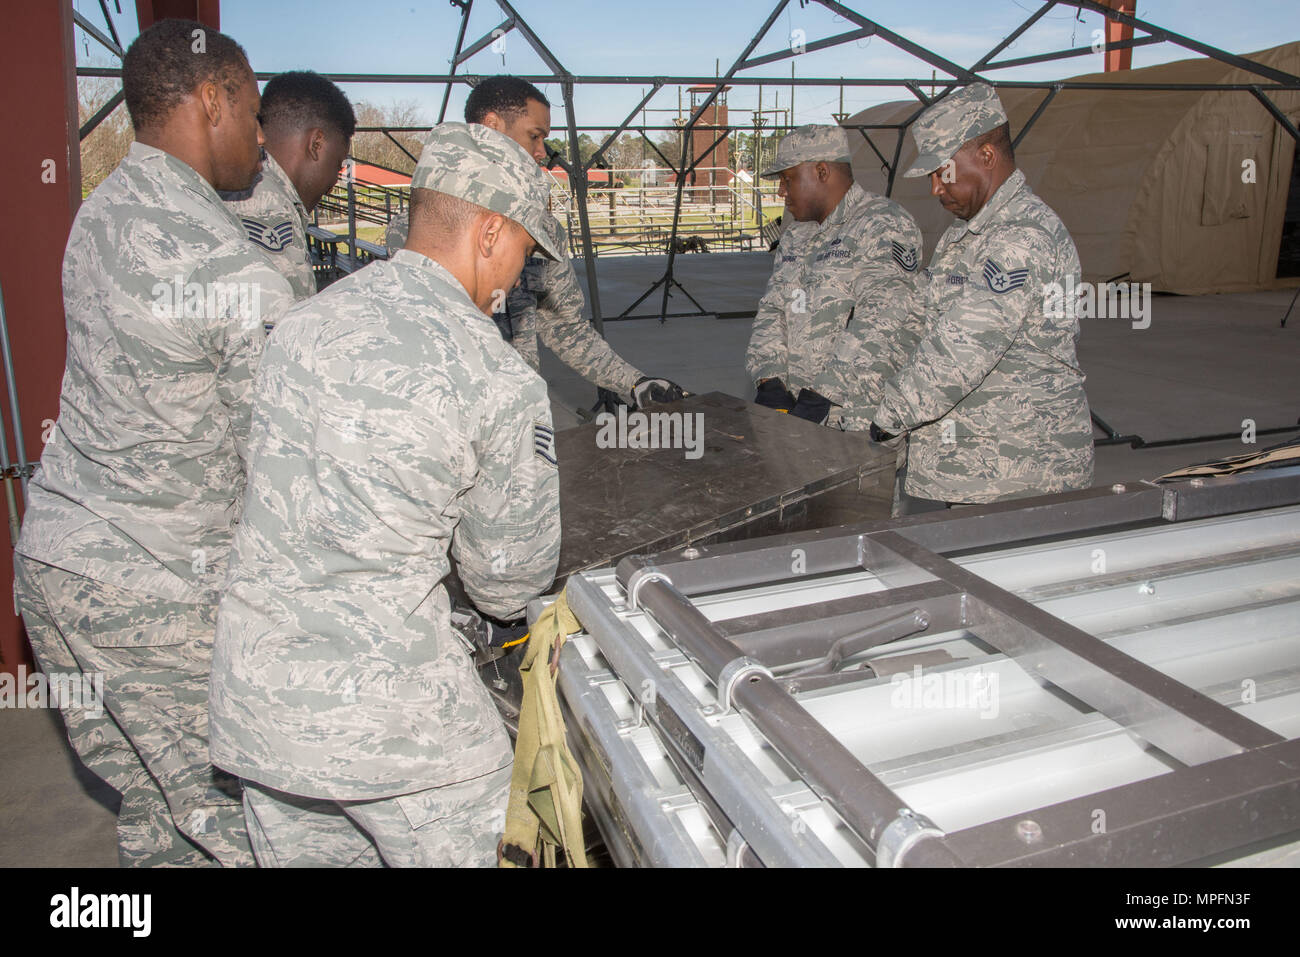 Maxwell AFB,  Ala. - Members of the 908th Airlift Wing practice for an upcoming Single Pallet Expeditionary Kitchen inspection. (US Air Force photo by Trey Ward/Released) - Stock Image